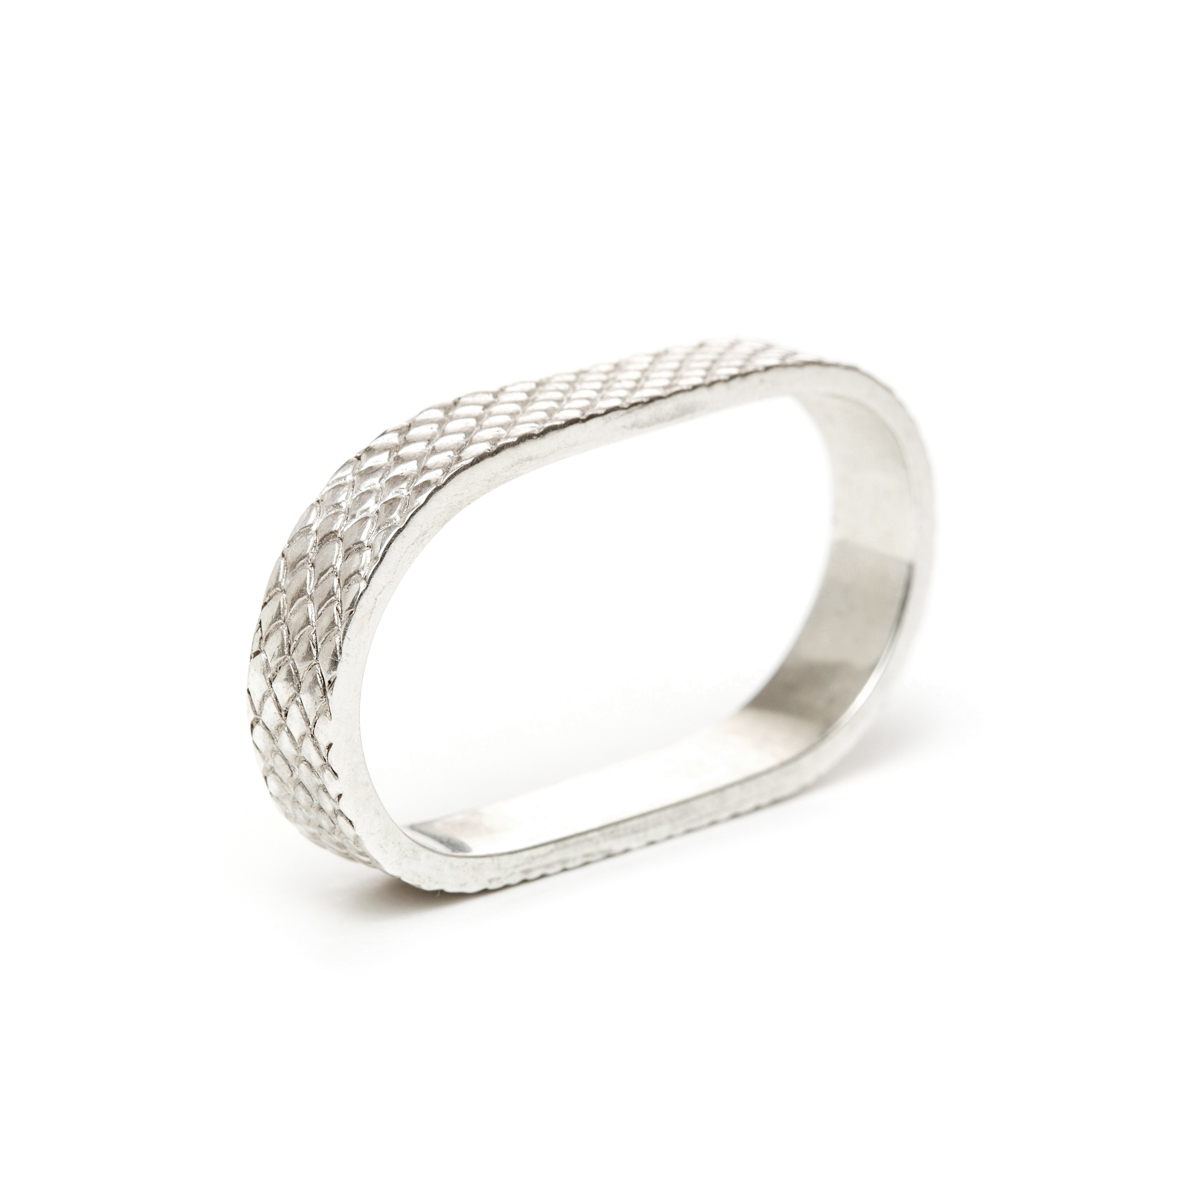 Taïs : Two-finger ring snake skin made with solid silver ...